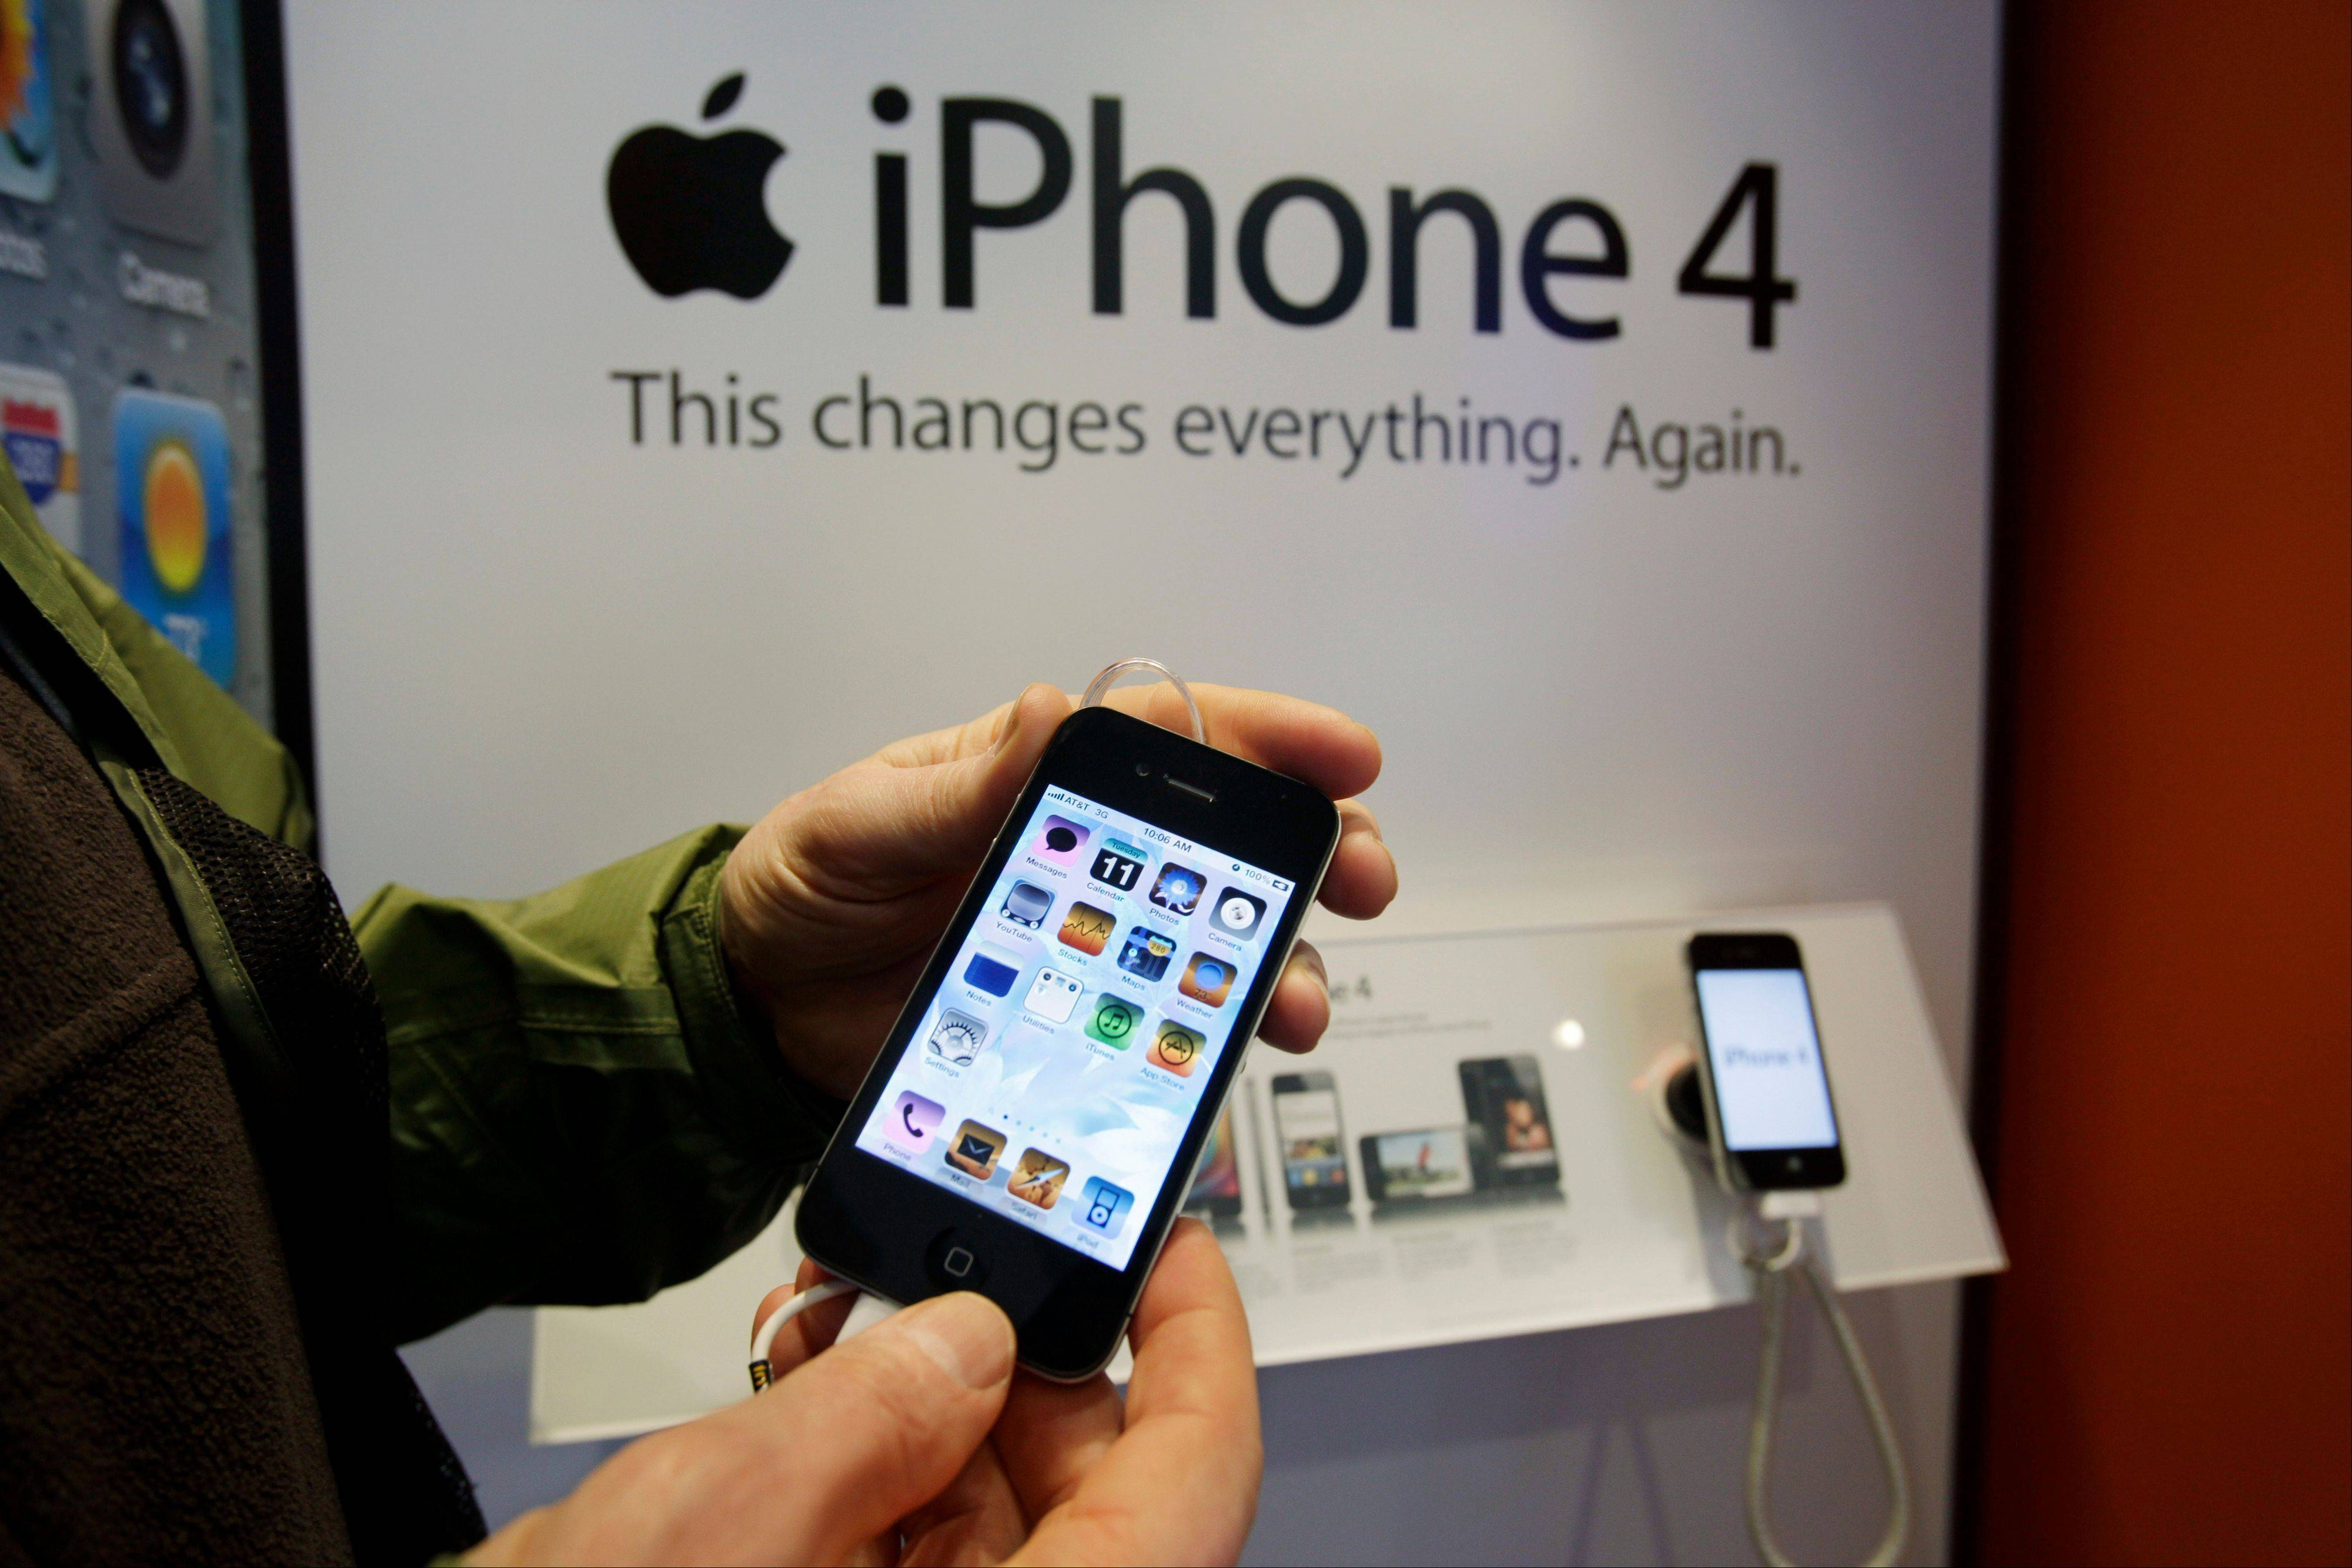 A U.S. trade agency on Tuesday issued a ban on imports of Apple's iPhone 4 and a variant of the iPad 2 after finding the devices violate a patent held by South Korean rival Samsung Electronics. On Tuesday, the White House issued a recommendation to Congress that it limit the ITC's ability to impose import bans in these cases.